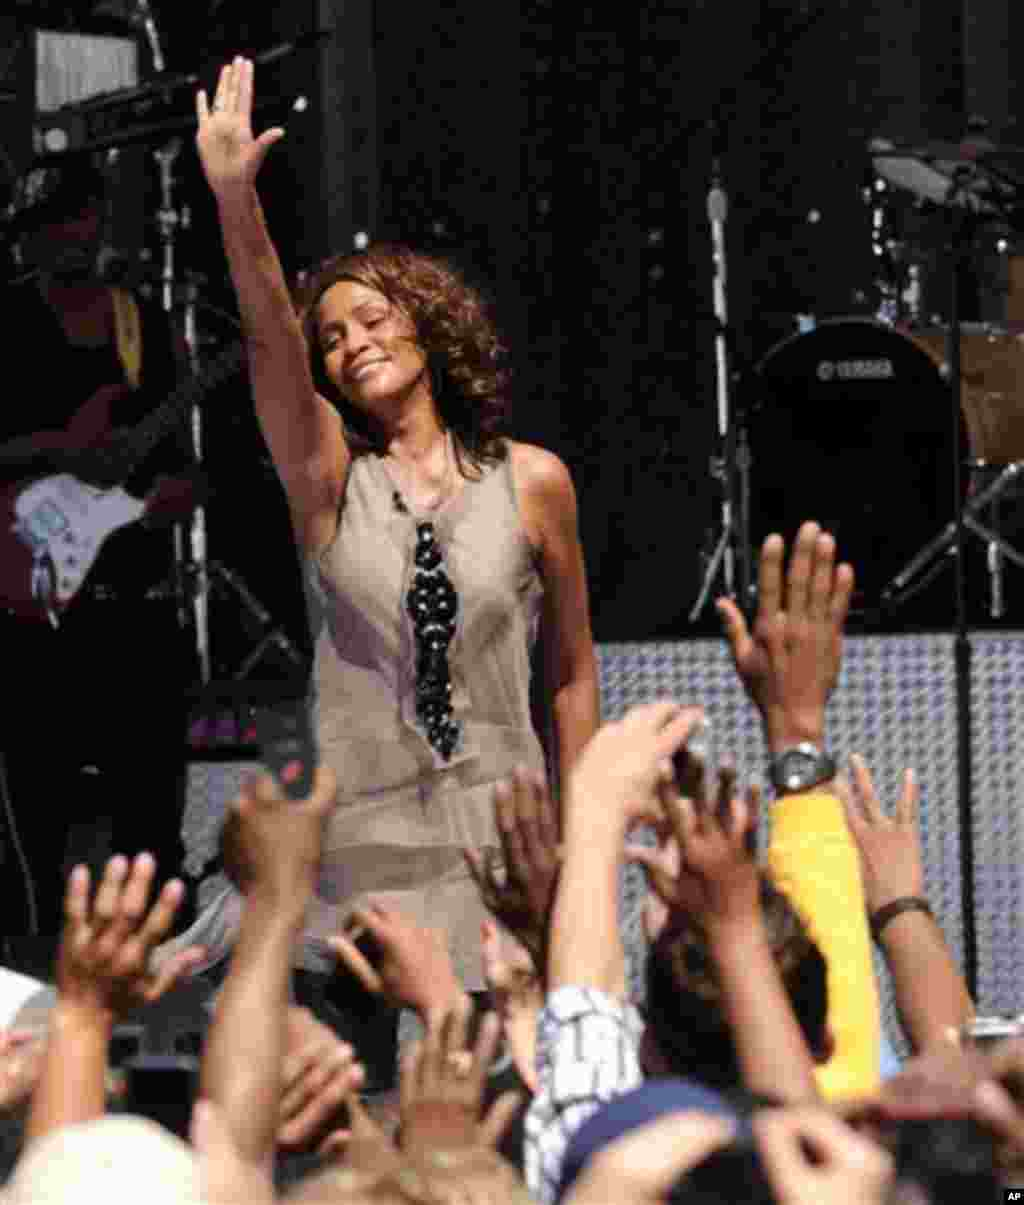 """Singer Whitney Houston performs during a taping for """"Good Morning America"""" in Central Park on Tuesday, Sept. 1, 2009 in New York. The performance will air on Wednesday. (AP Photo/Evan Agostini)"""